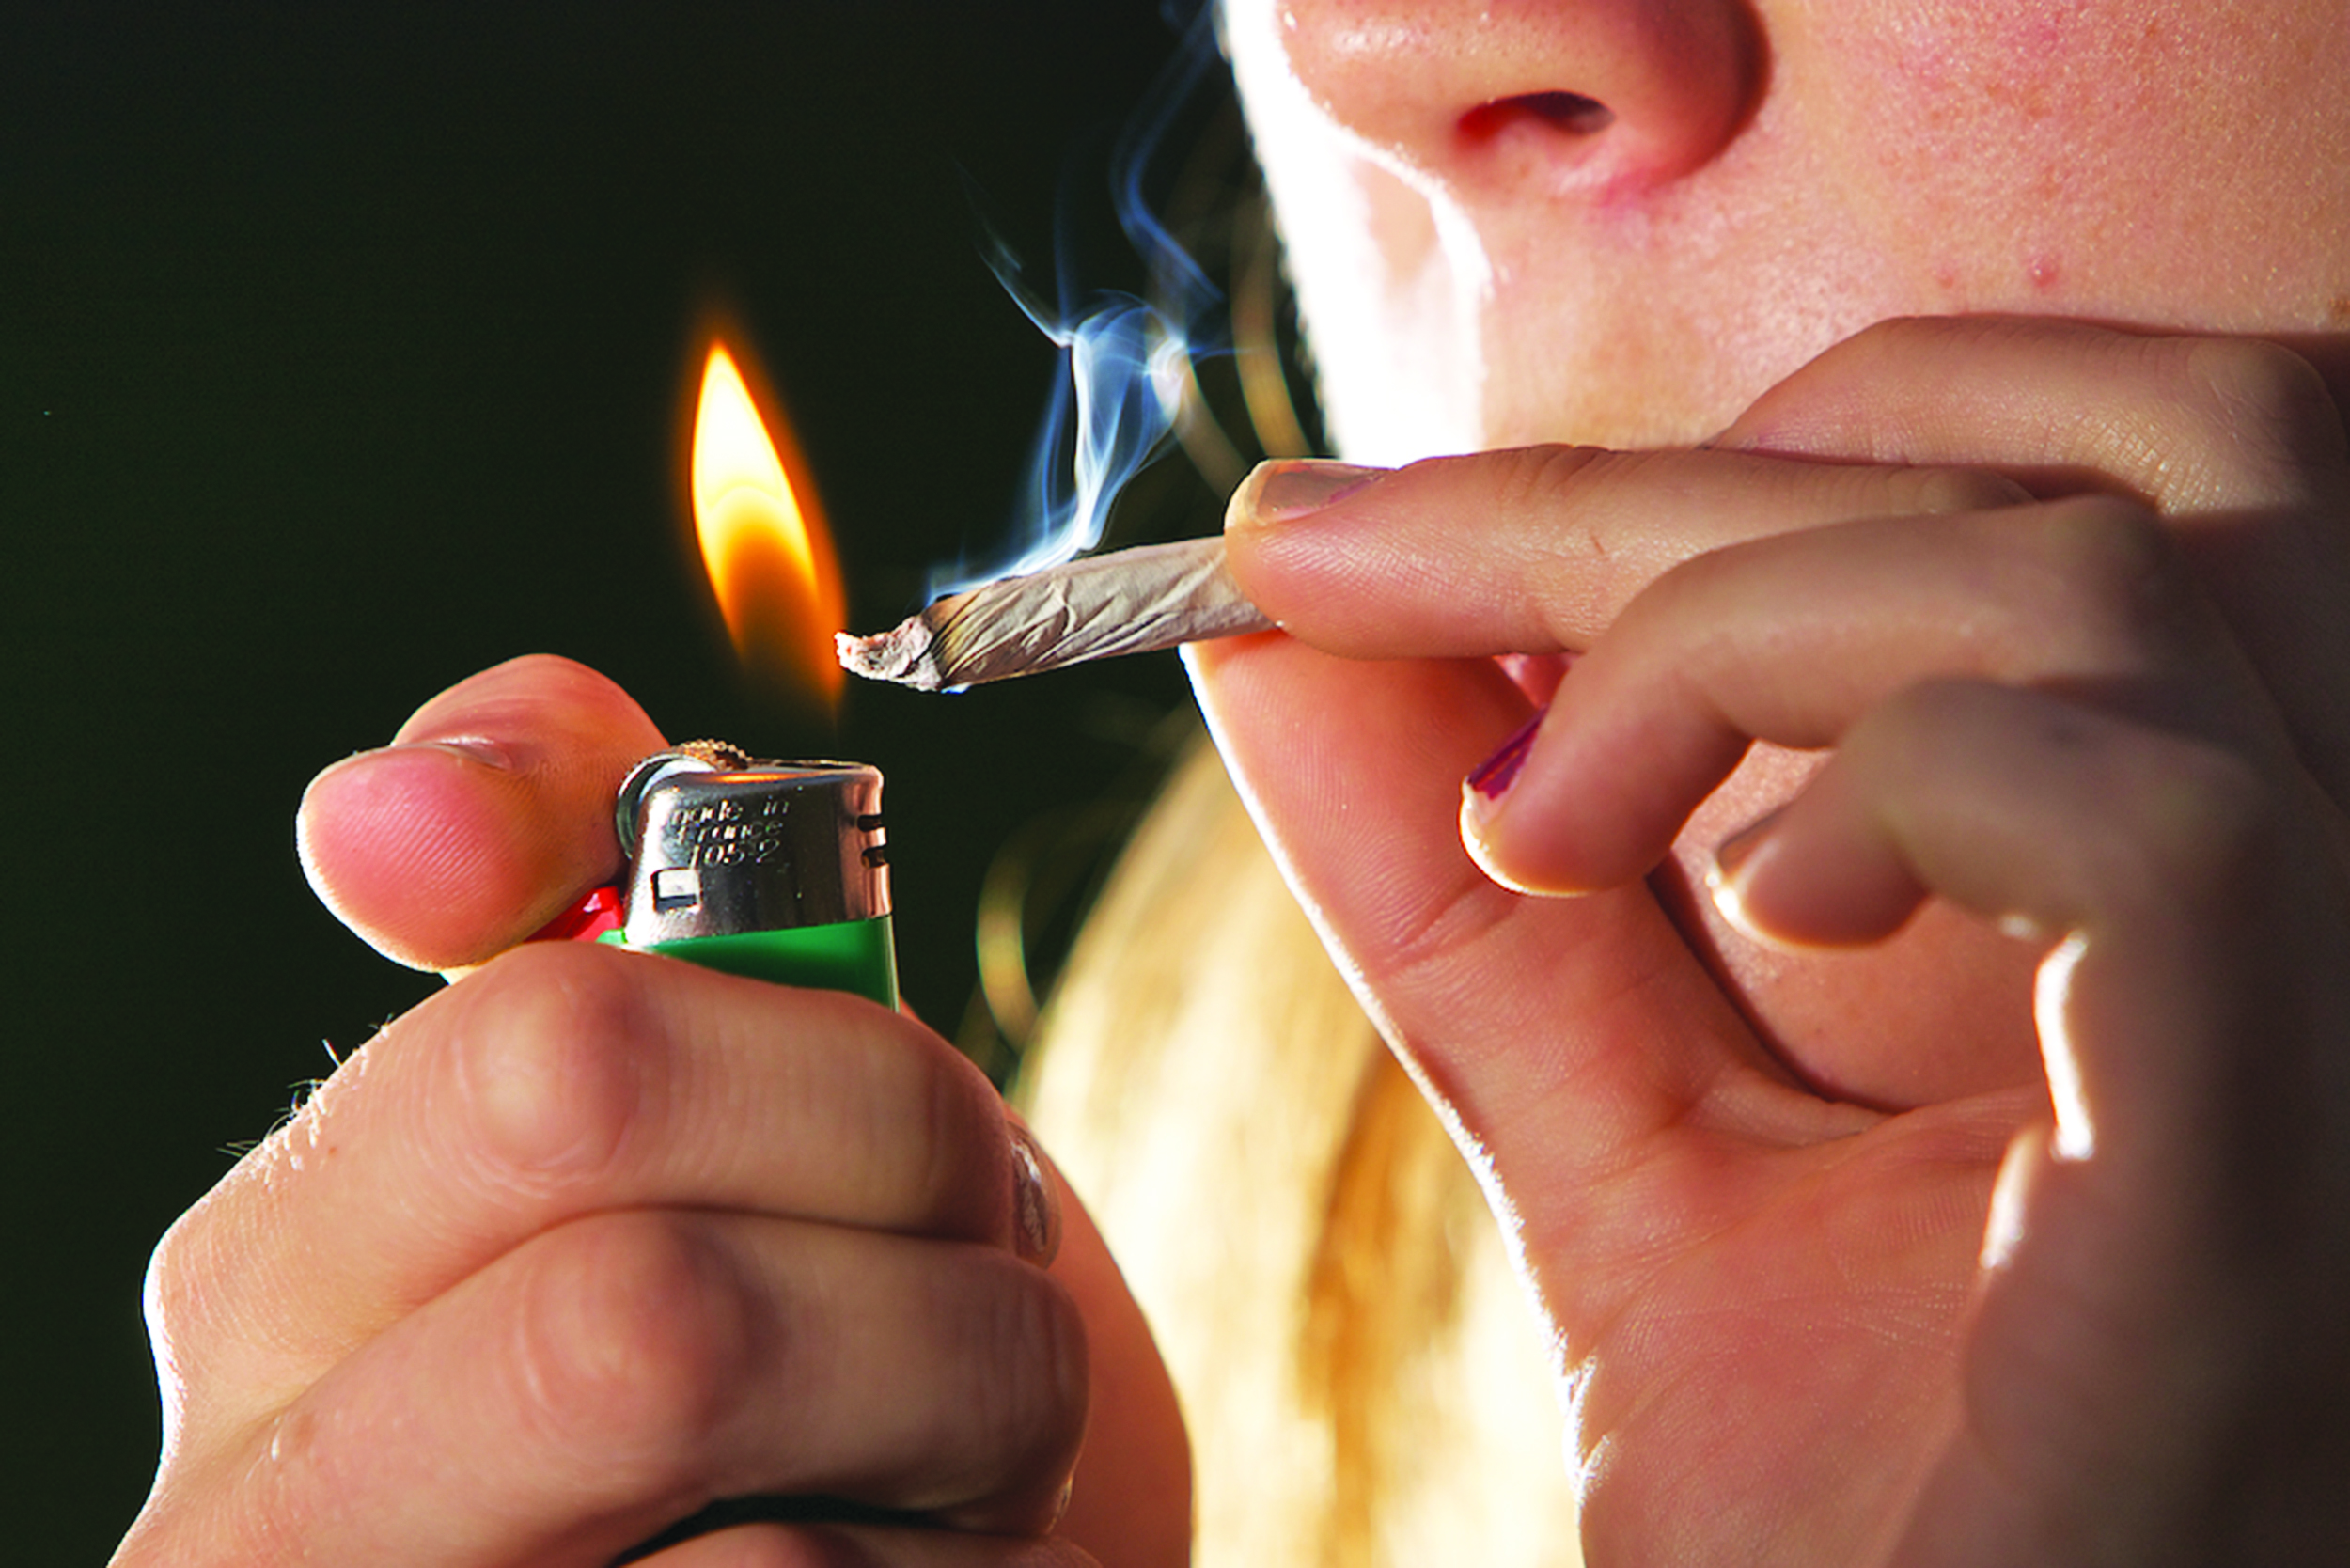 New York State Gov. Andrew Cuomo called on legislators to affirm a motion that would allow the New York State Department of Health to investigate the possible effects of allowing recreational marijuana. Strictures from the federal government would likely maintain the administrative penalties for marijuana use on-campus. (Chuck Grimmett/Creative Commons)